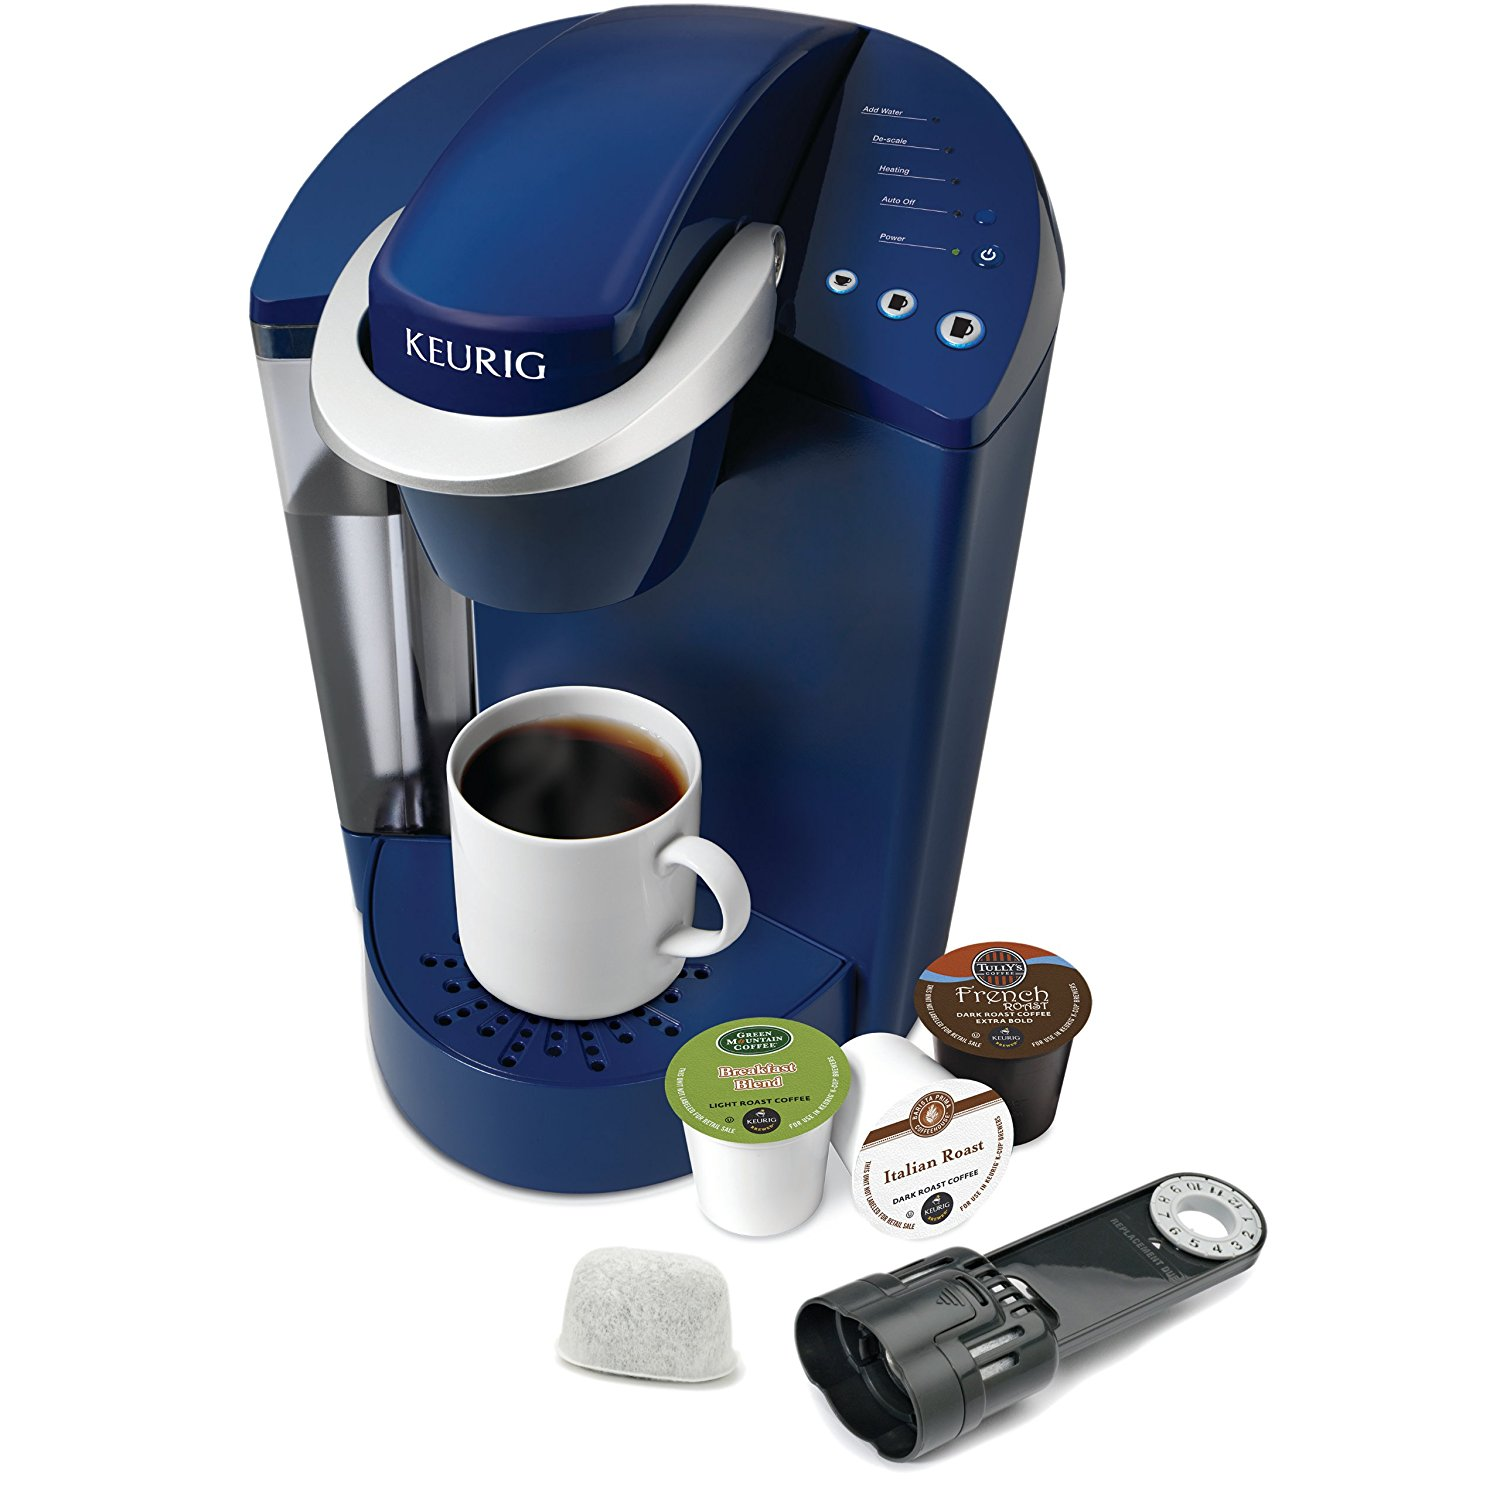 Best Keurig Coffee Makers Of 2018 Reviews At: coffee maker brands